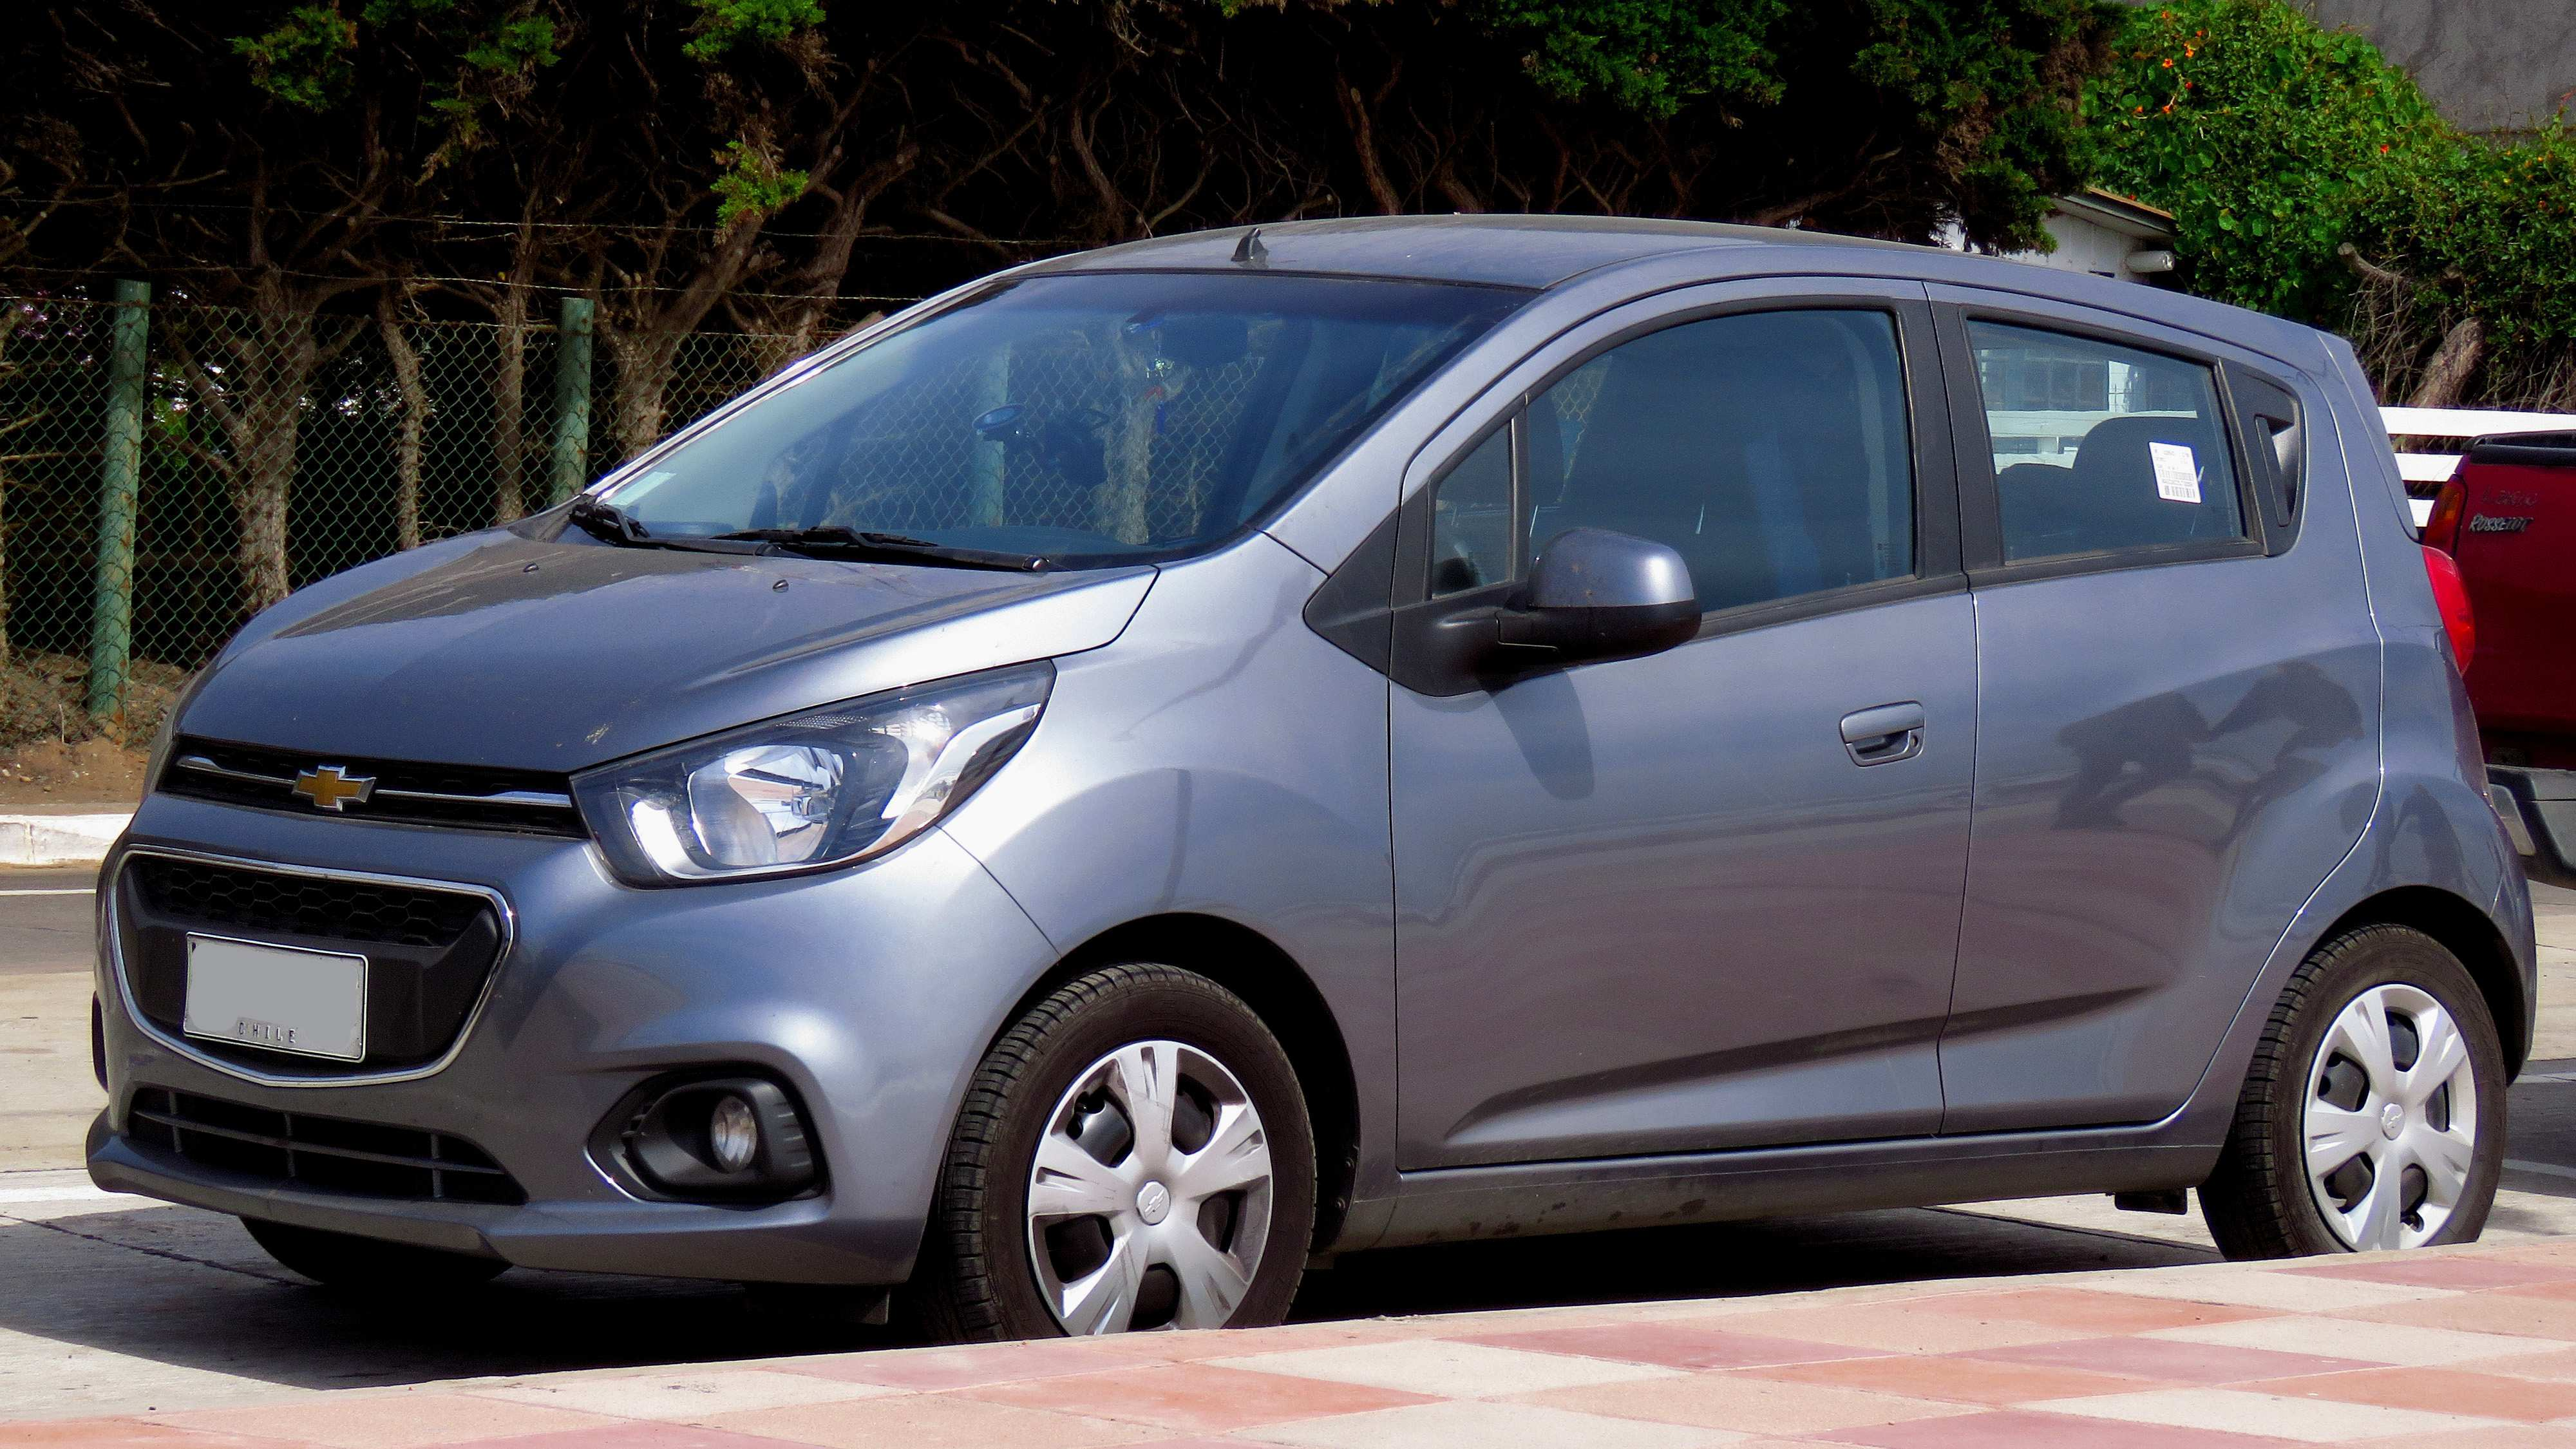 71 Great Chevrolet Beat 2019 Specs by Chevrolet Beat 2019